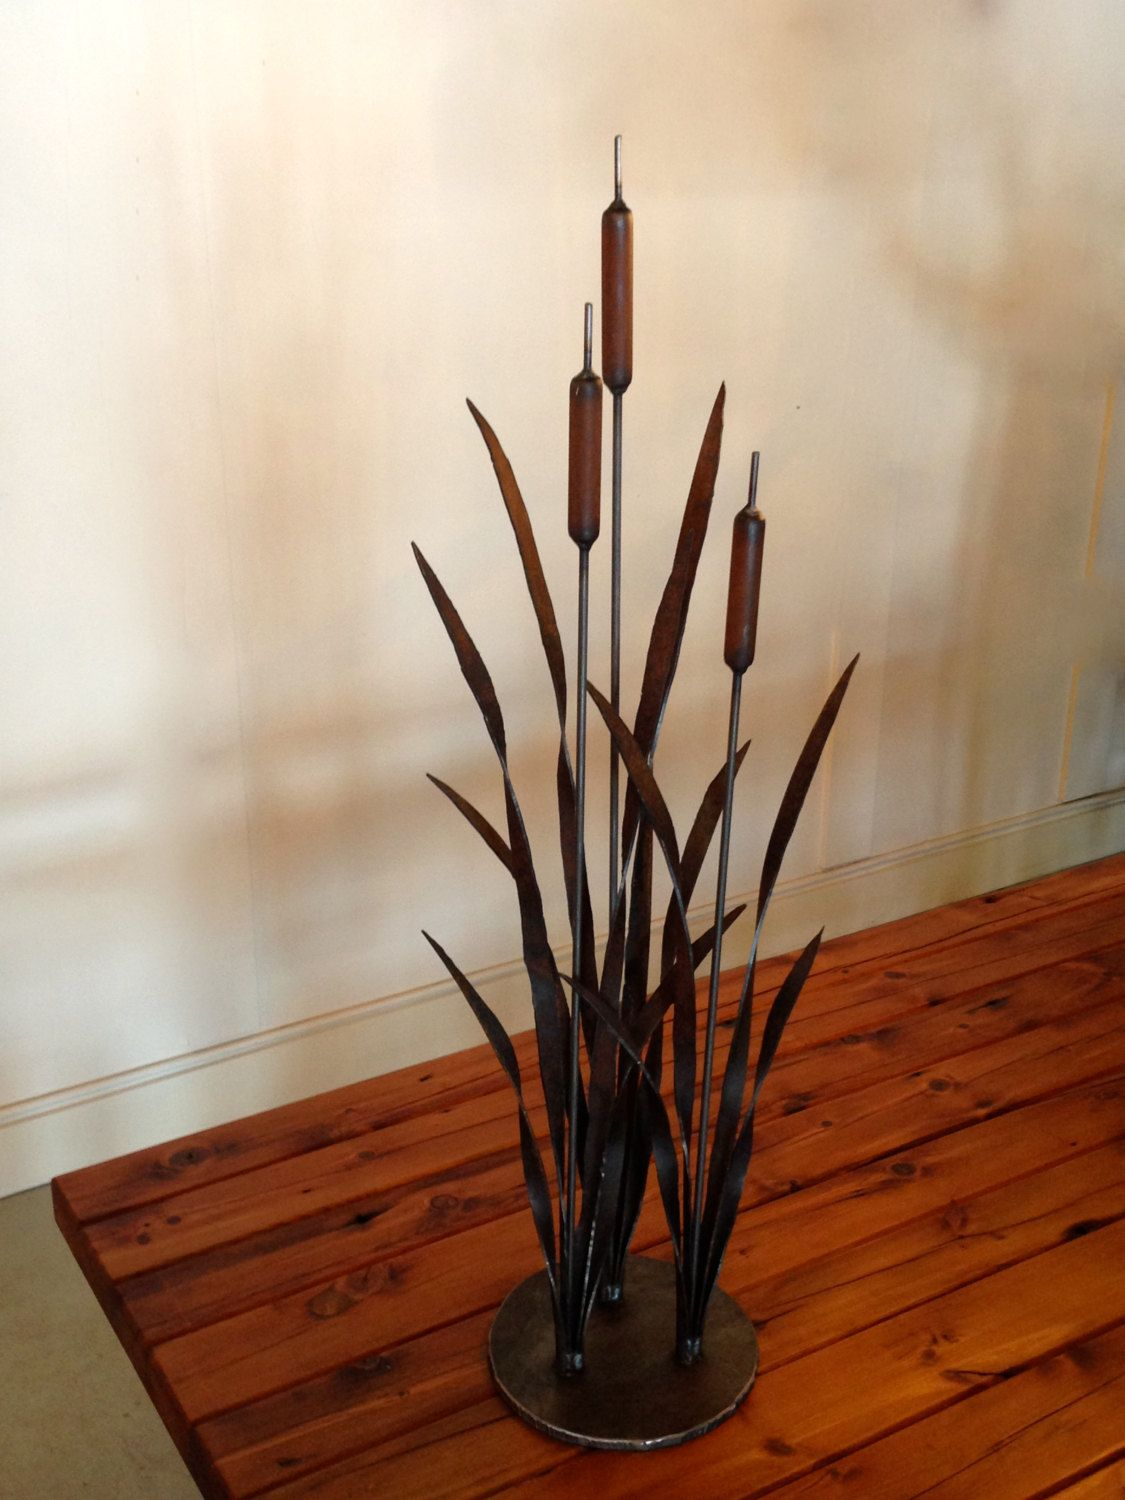 Metal Bulrush Sculpture/Garden Art | Pinterest | Garden art, Metals ...